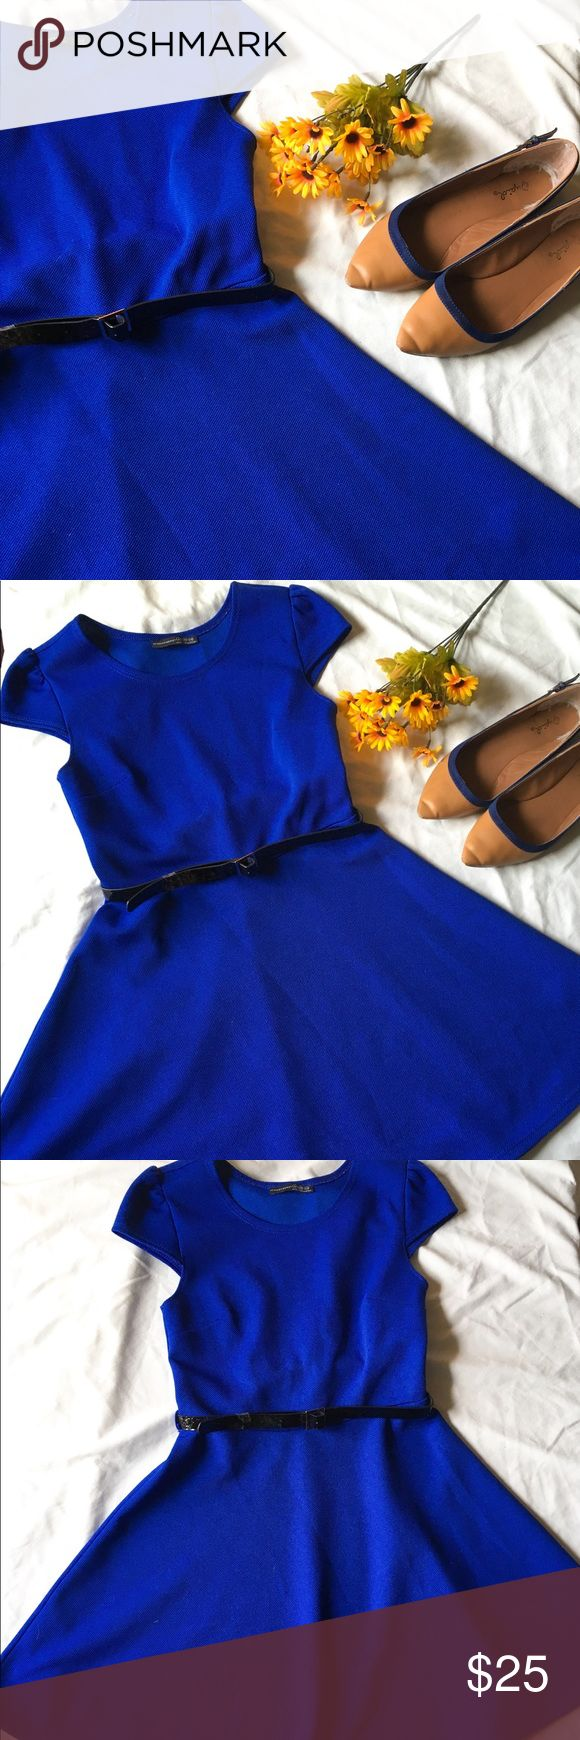 "Blue skater dress EUC blue dress with black belt. Belt has some wear but could be easily replaced. Dress is versatile, either for work or a night out! Size is UK 8 • length 33"", waist 13"", hips free • 100% Polyester • Wash with like colors • Hang dry Atmosphere Dresses"